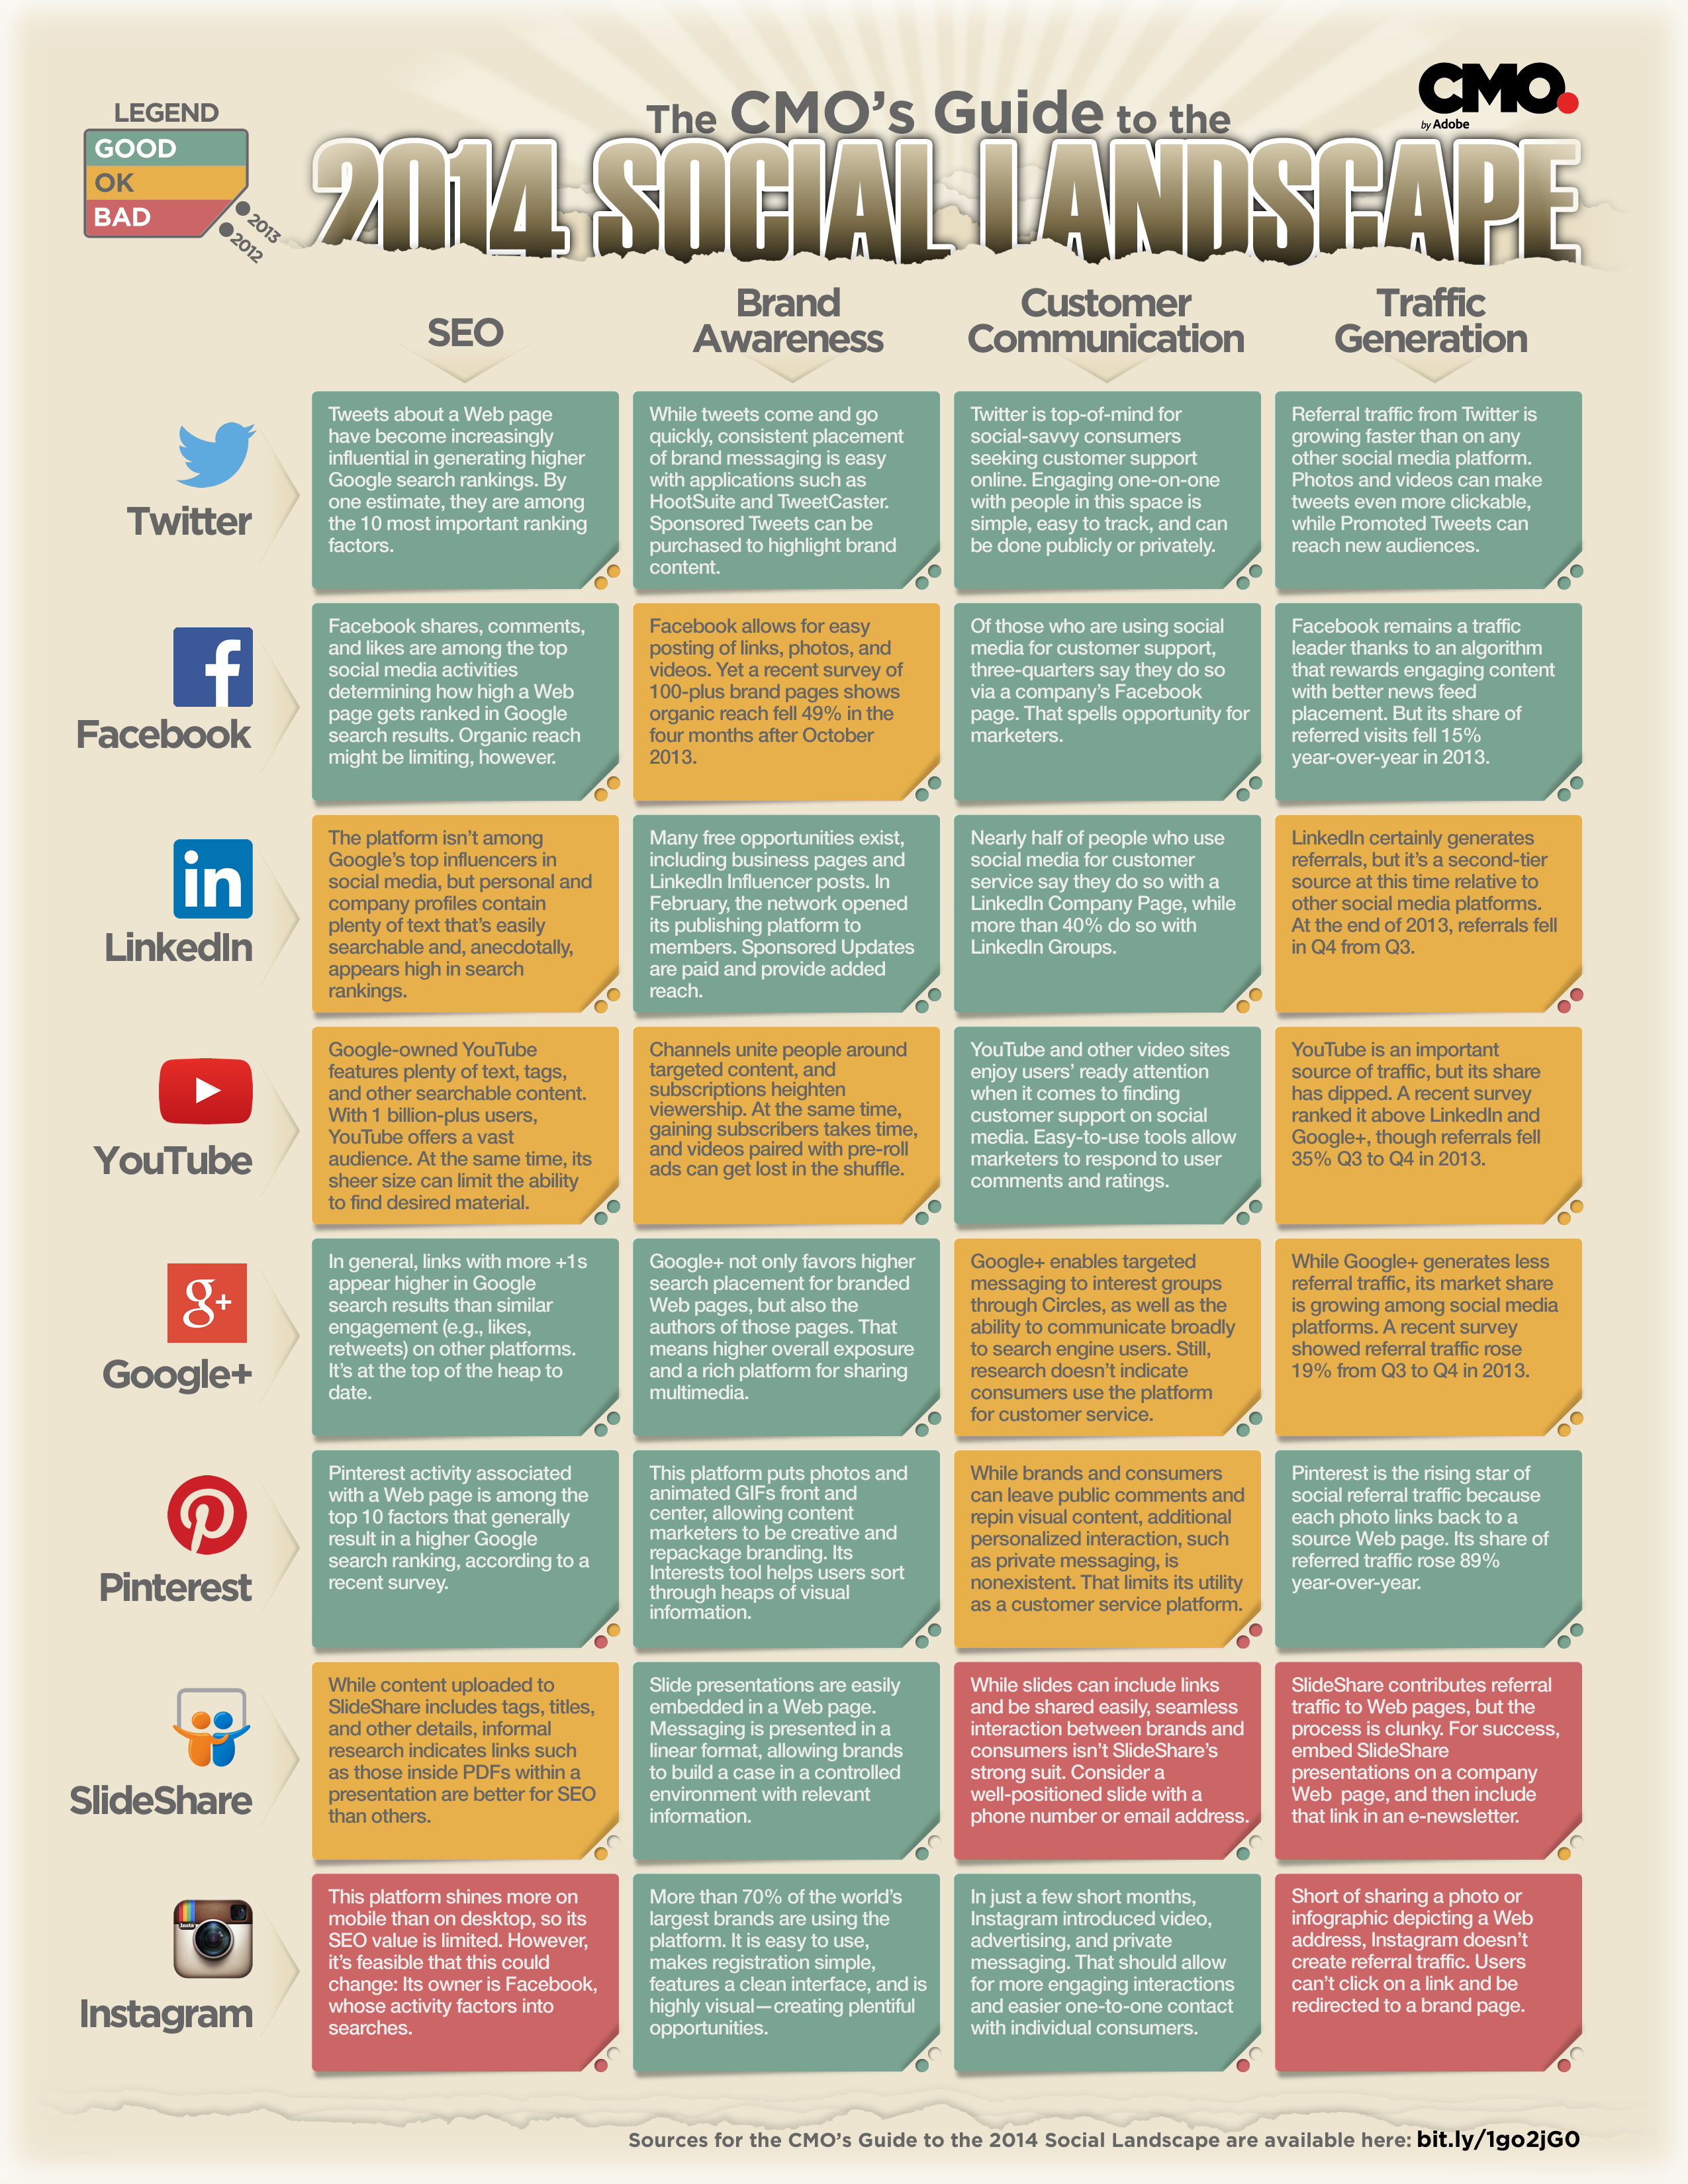 The CMO's Guide to the 2014 Social Landscape